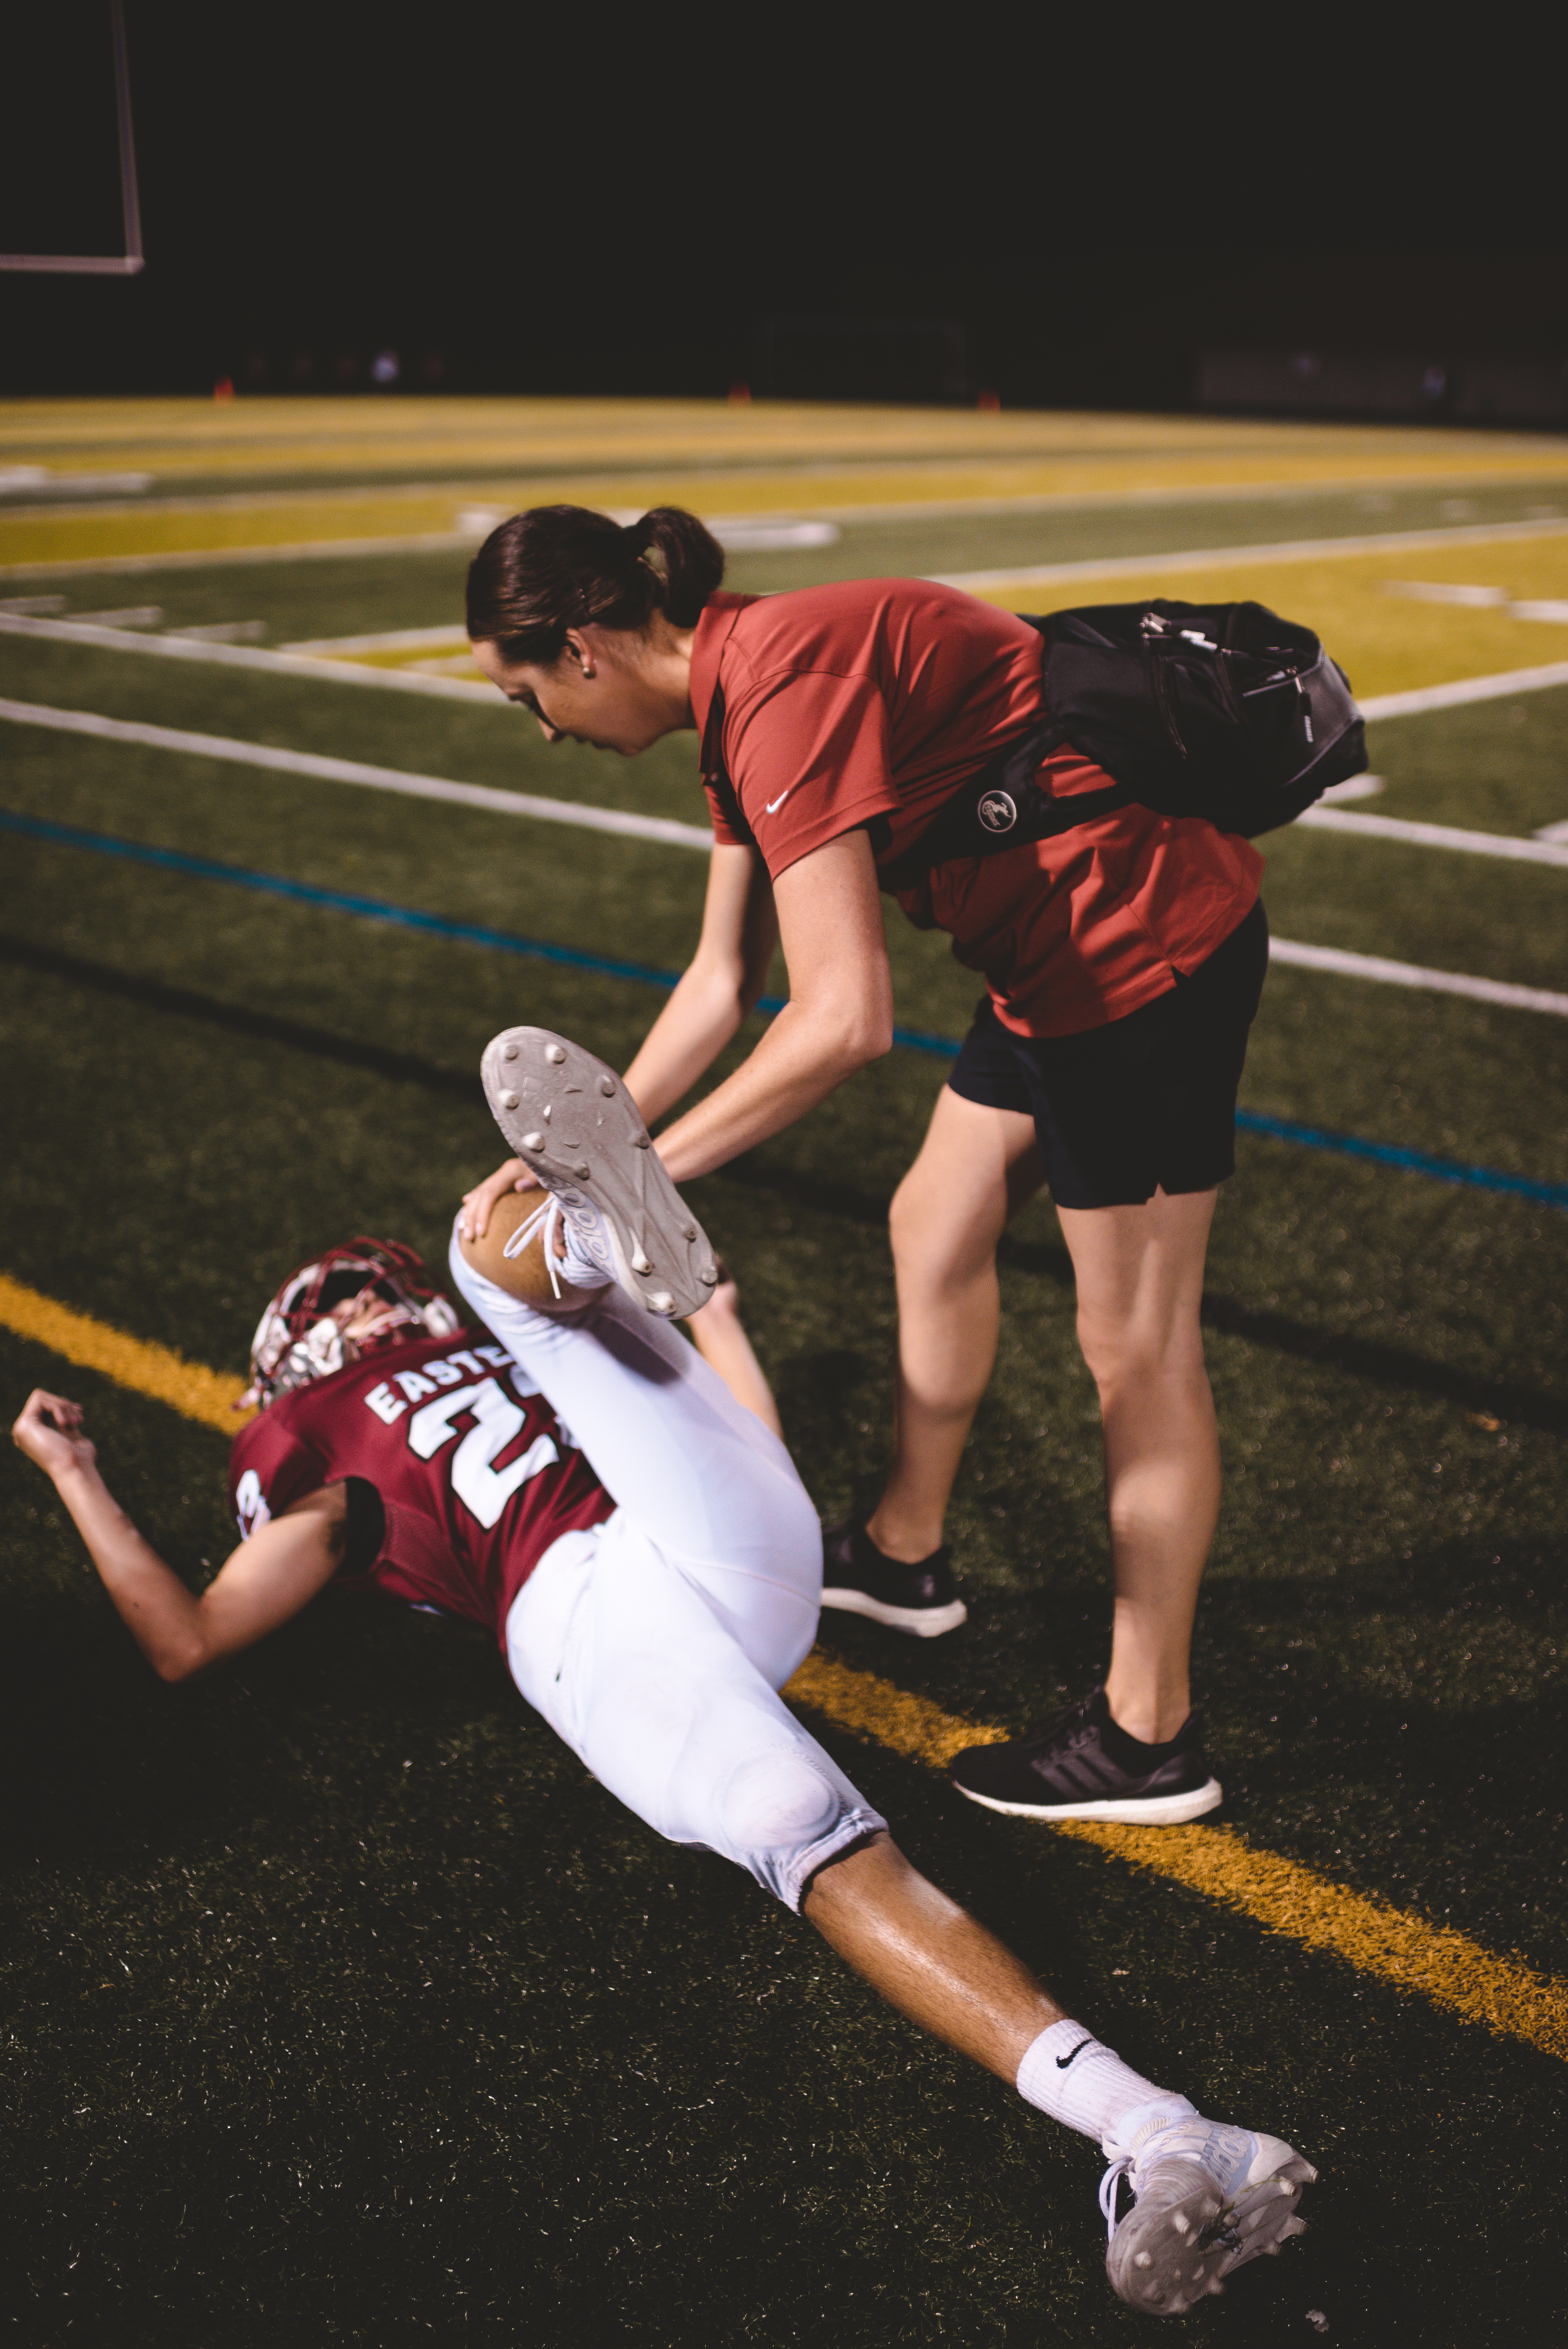 Athlete being stretched by athletic trainer